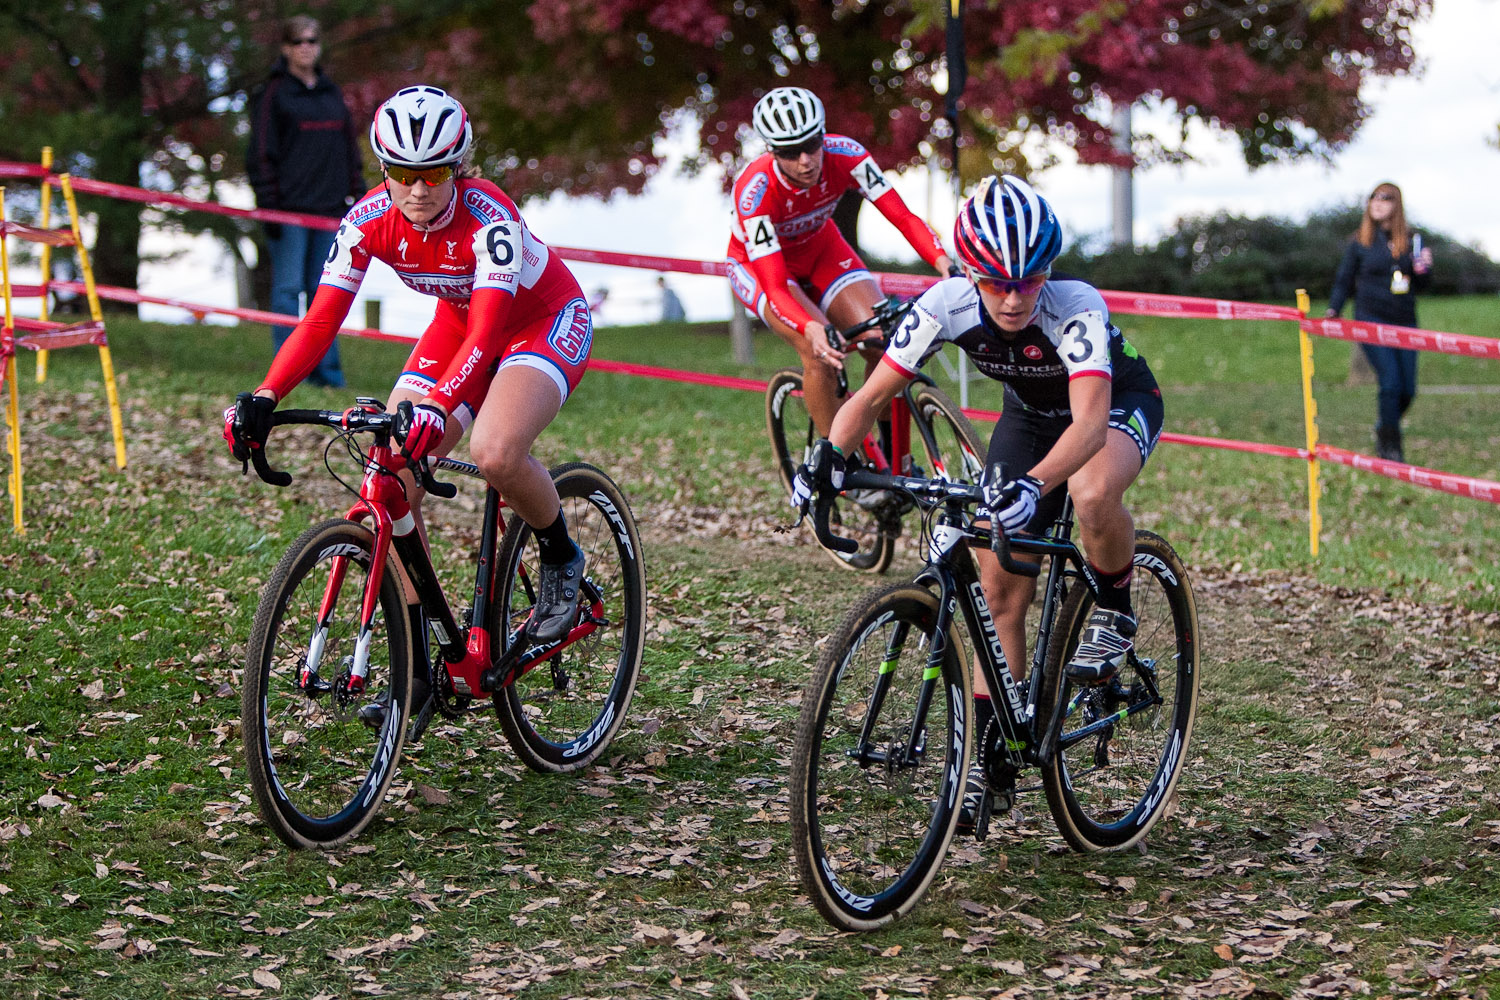 The chase group from right to left, Antonneau, Miller and Anderson. © Kent Baumgardt